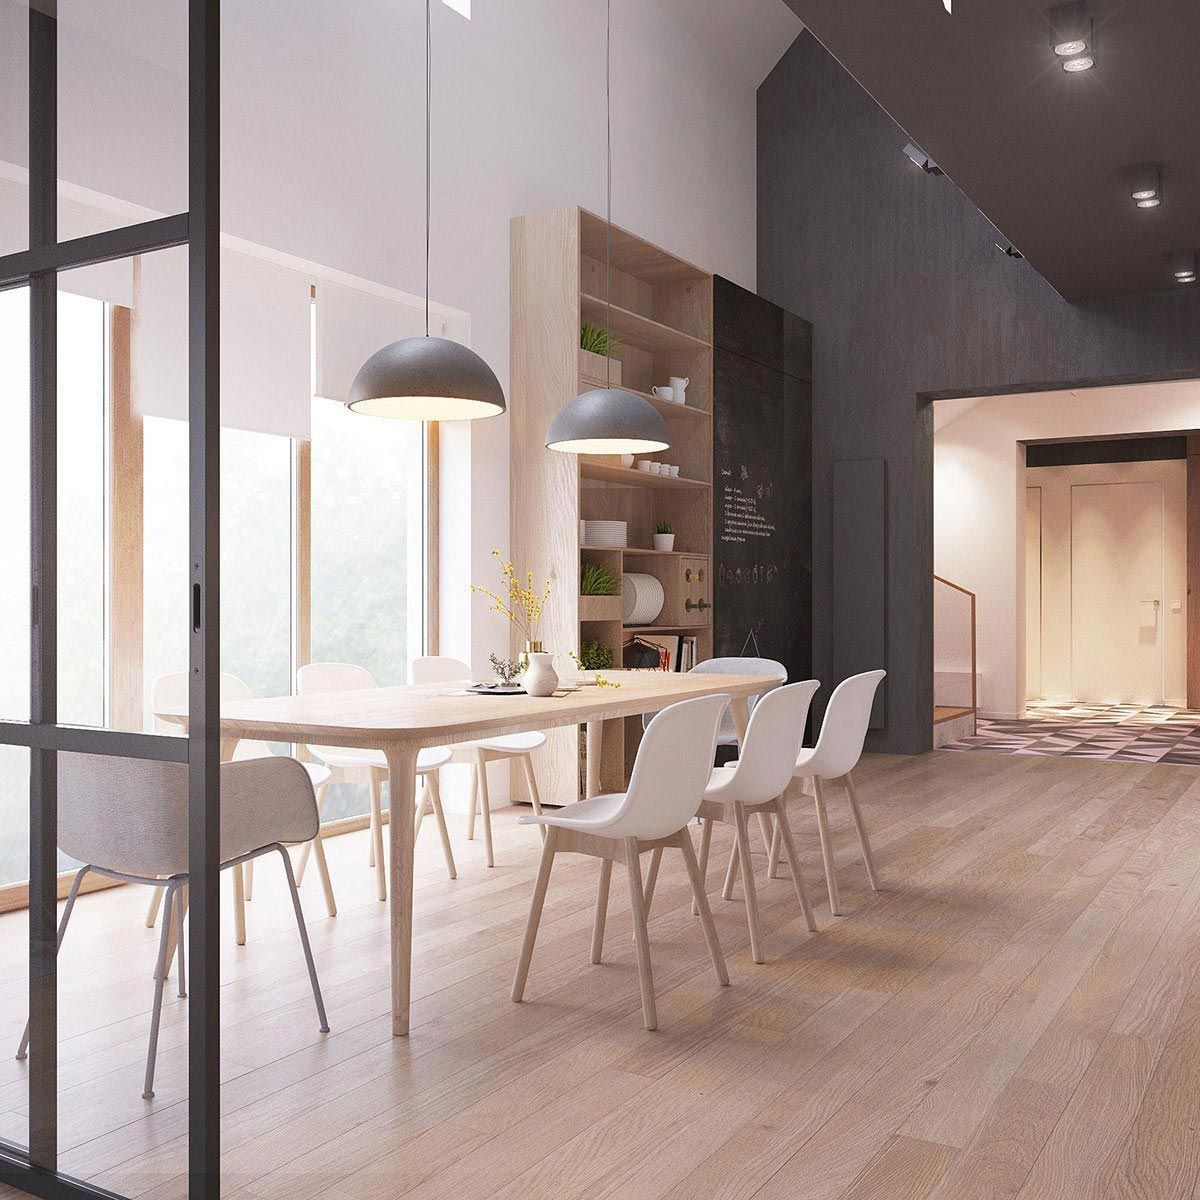 Two Storey Apartment Contemporary Scandinavian Style Young Family 10 Scandinavian Dining Room Modern Scandinavian Interior Scandinavian Interior Design